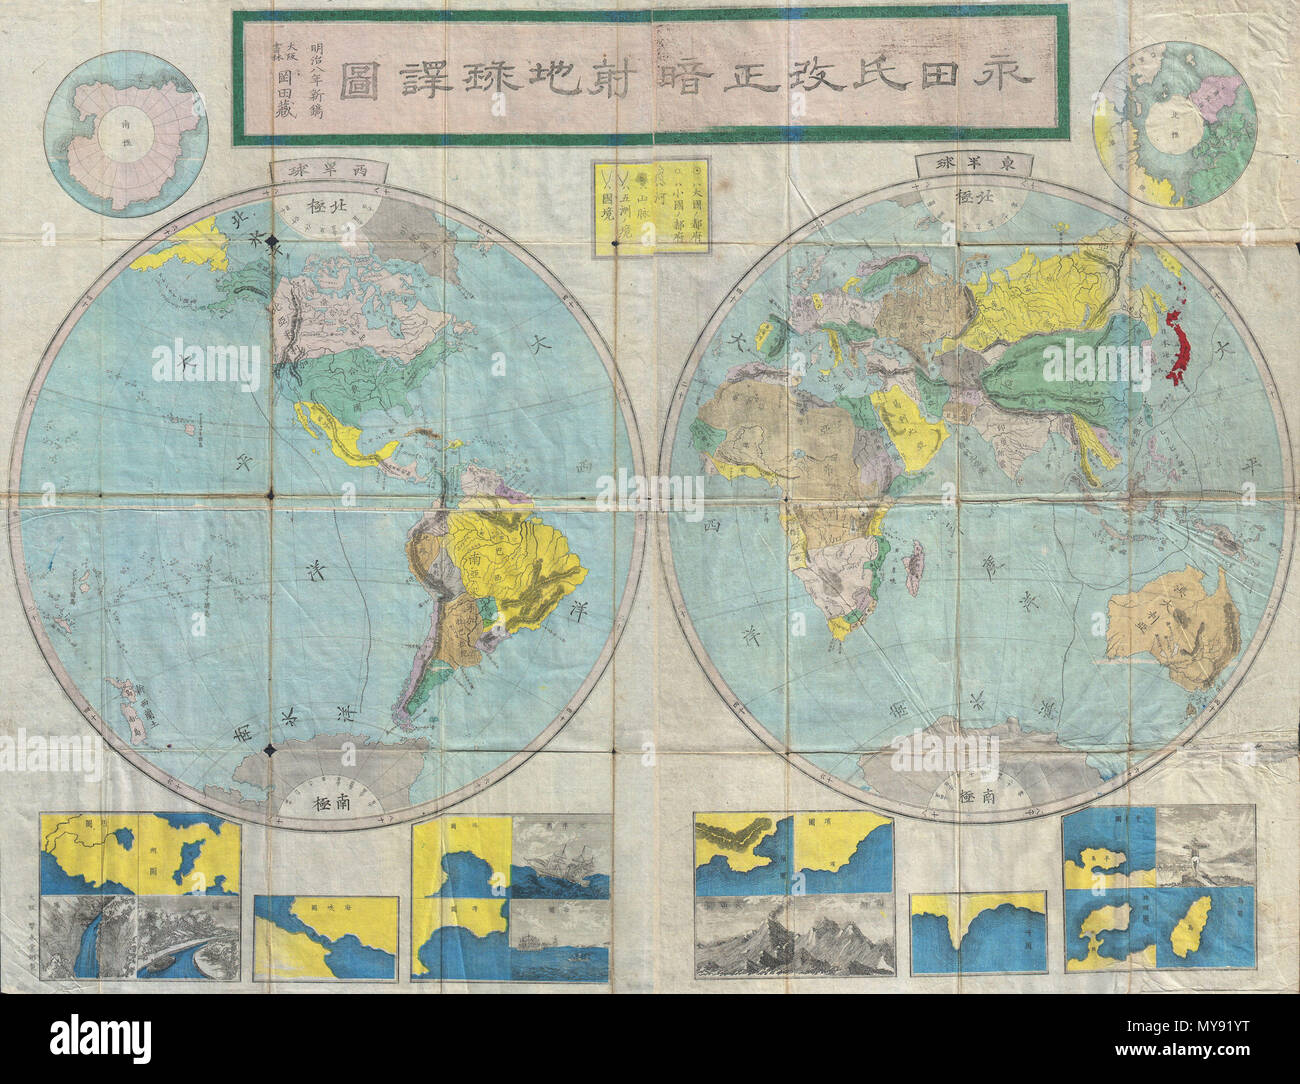 Map Of The World In English.World English An Exceedingly Rare Find This Is A Japanese Map Of